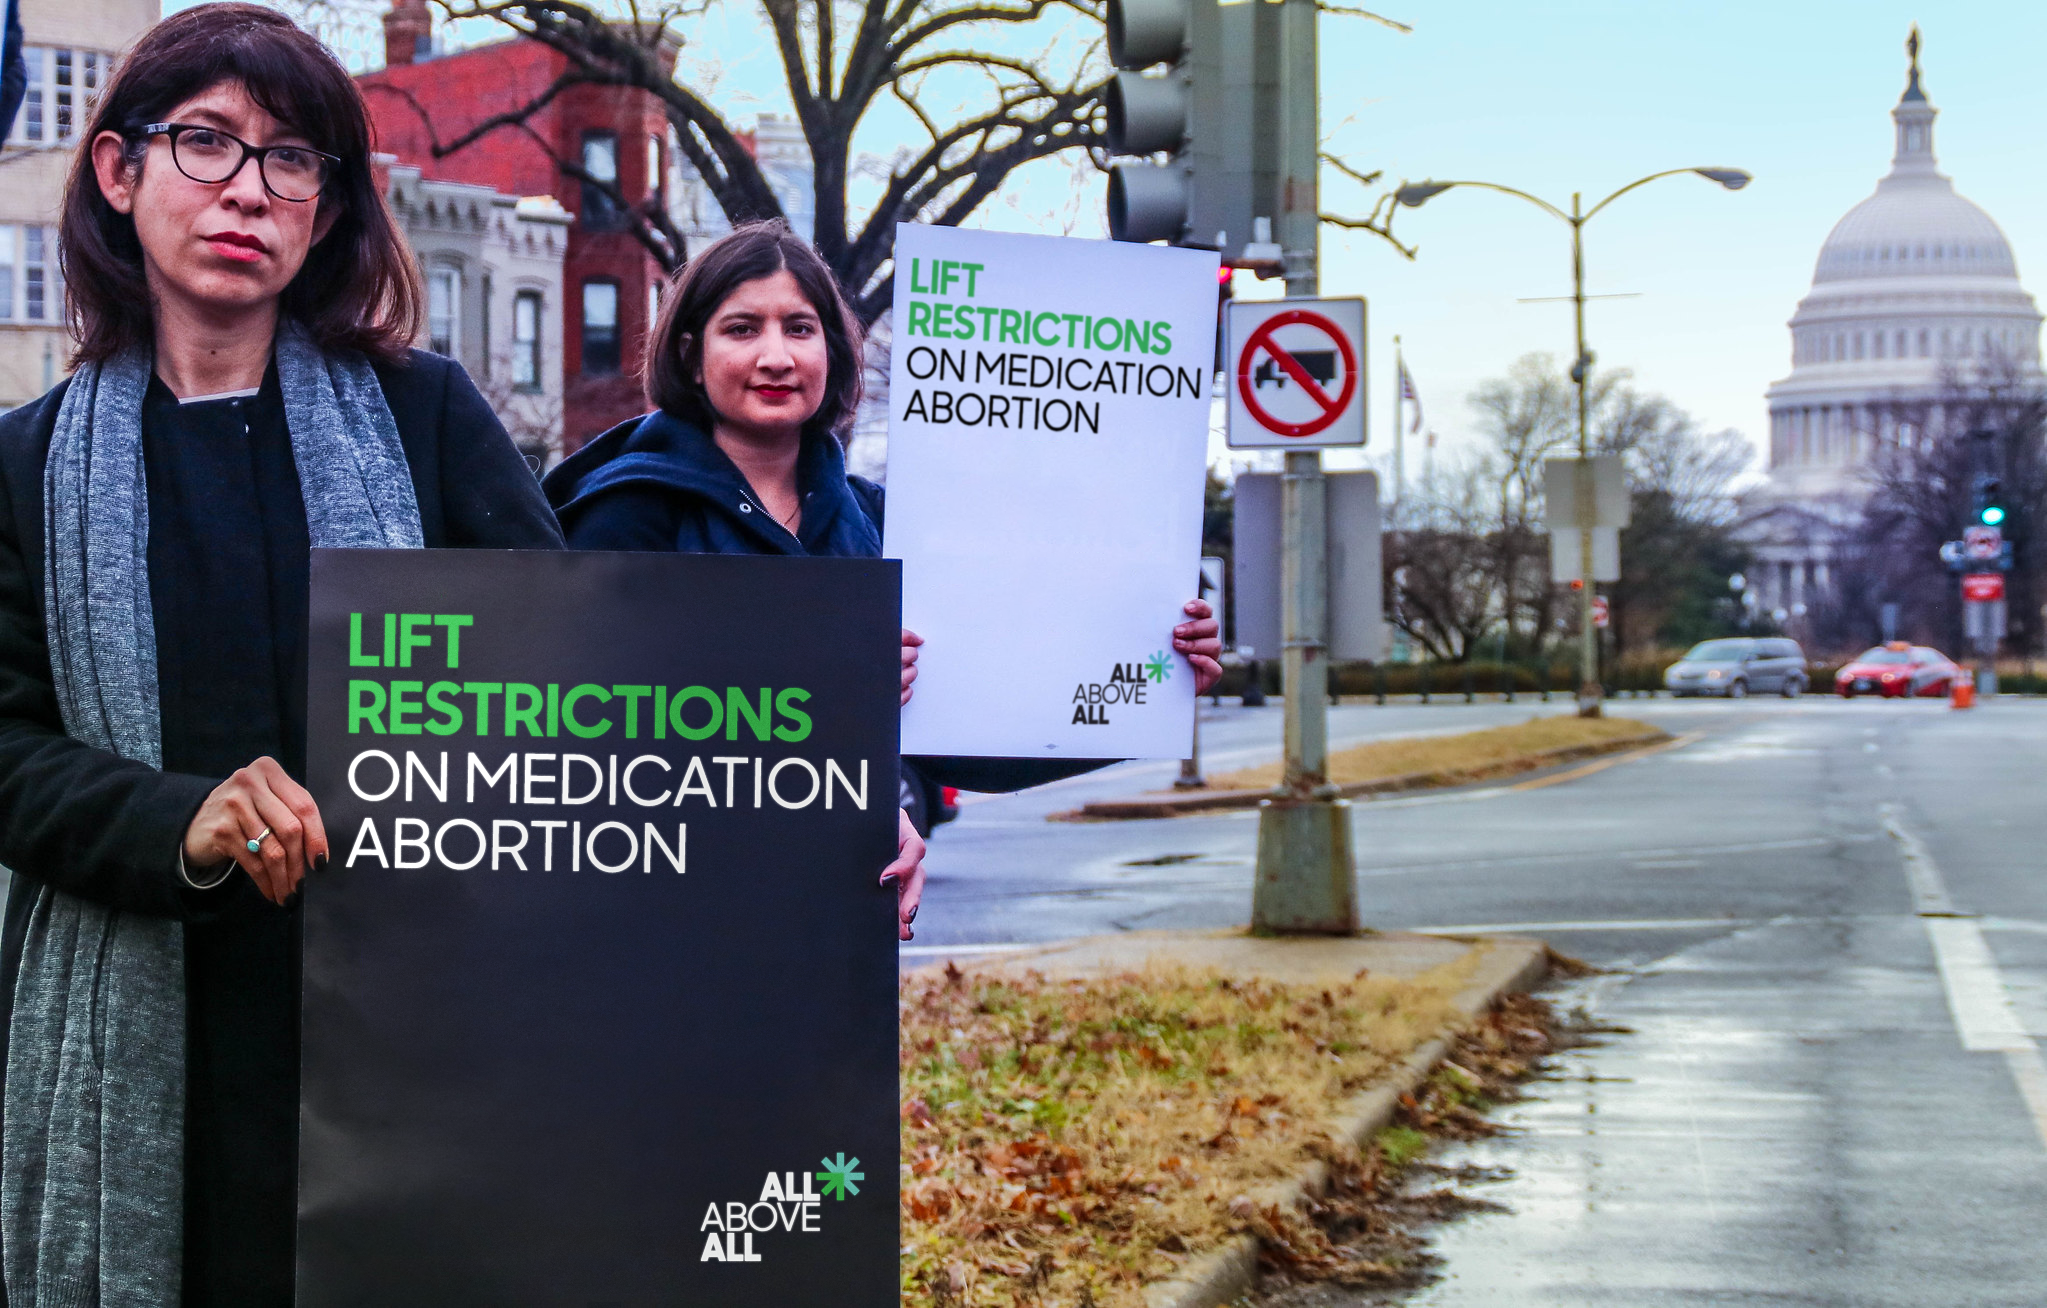 Lift outdated restrictions on medication abortion care!